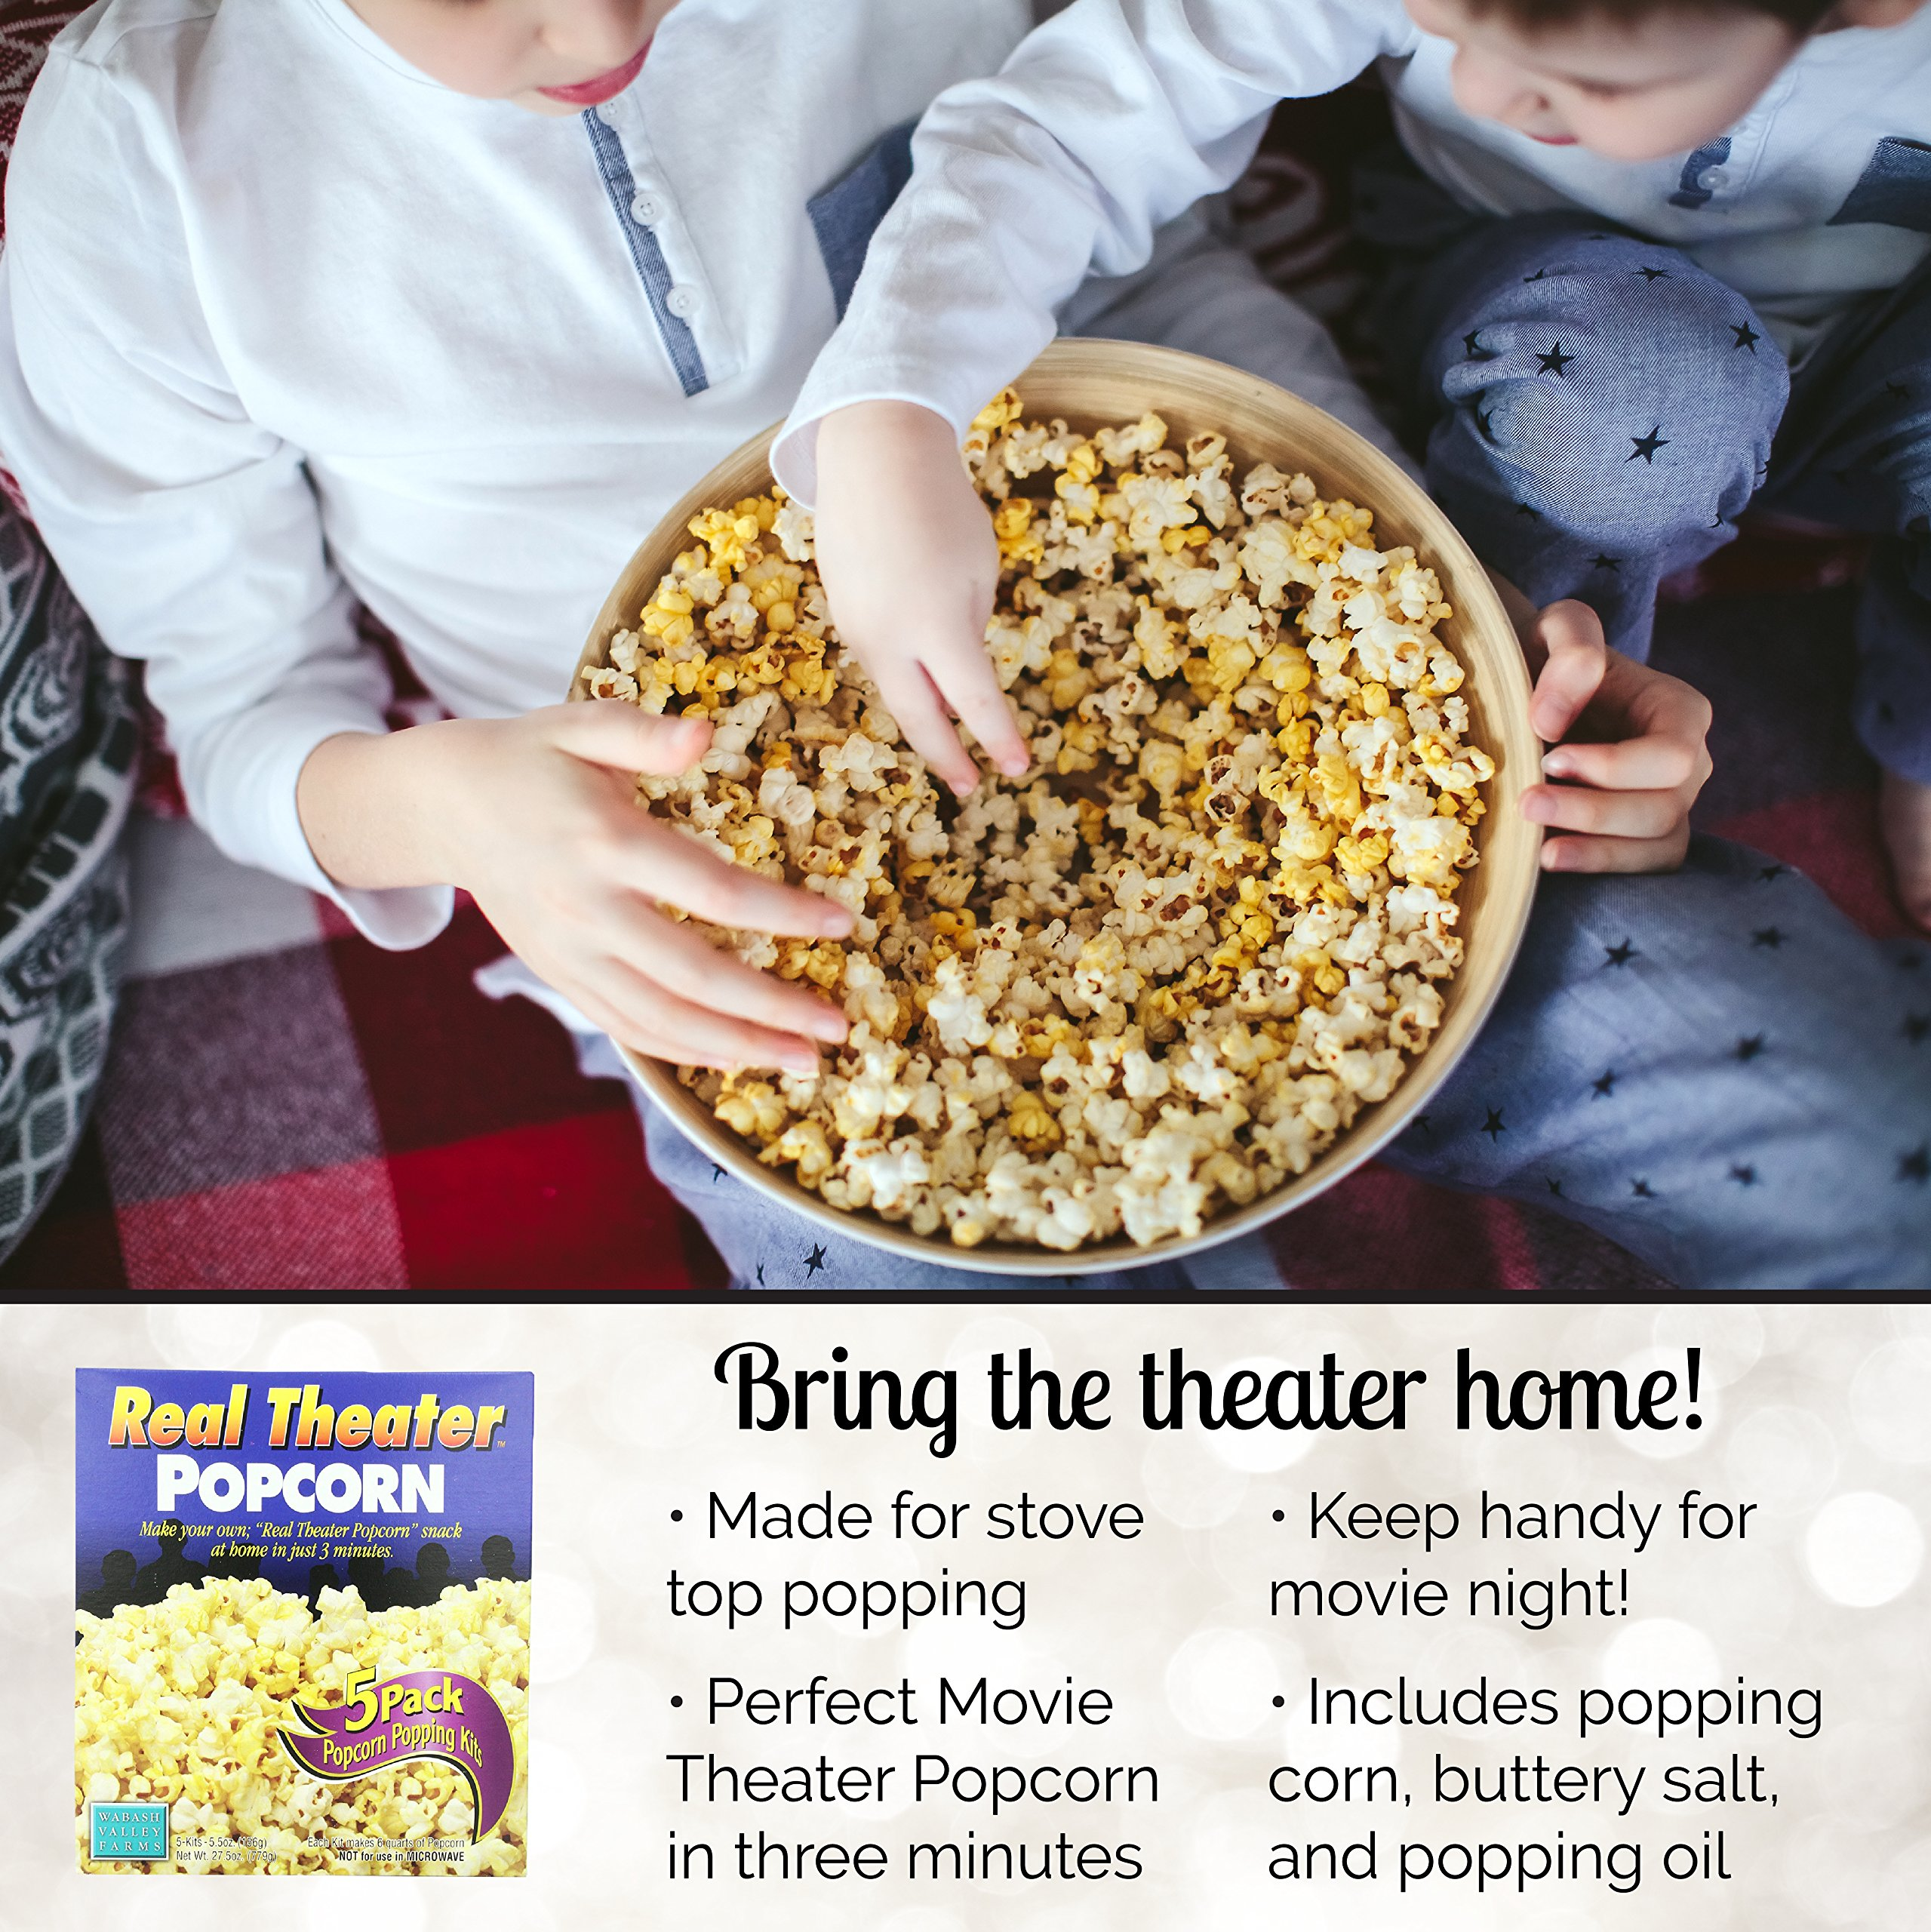 Wabash Valley Farms Real Theater Popcorn Popping Kit - Each Popping Corn Set Includes Gourmet Movie Theater Popcorn, Buttery Salt, and Popping Oil - Perfect for Movie Nights and More - 25 Pack by Wabash Valley Farms (Image #1)